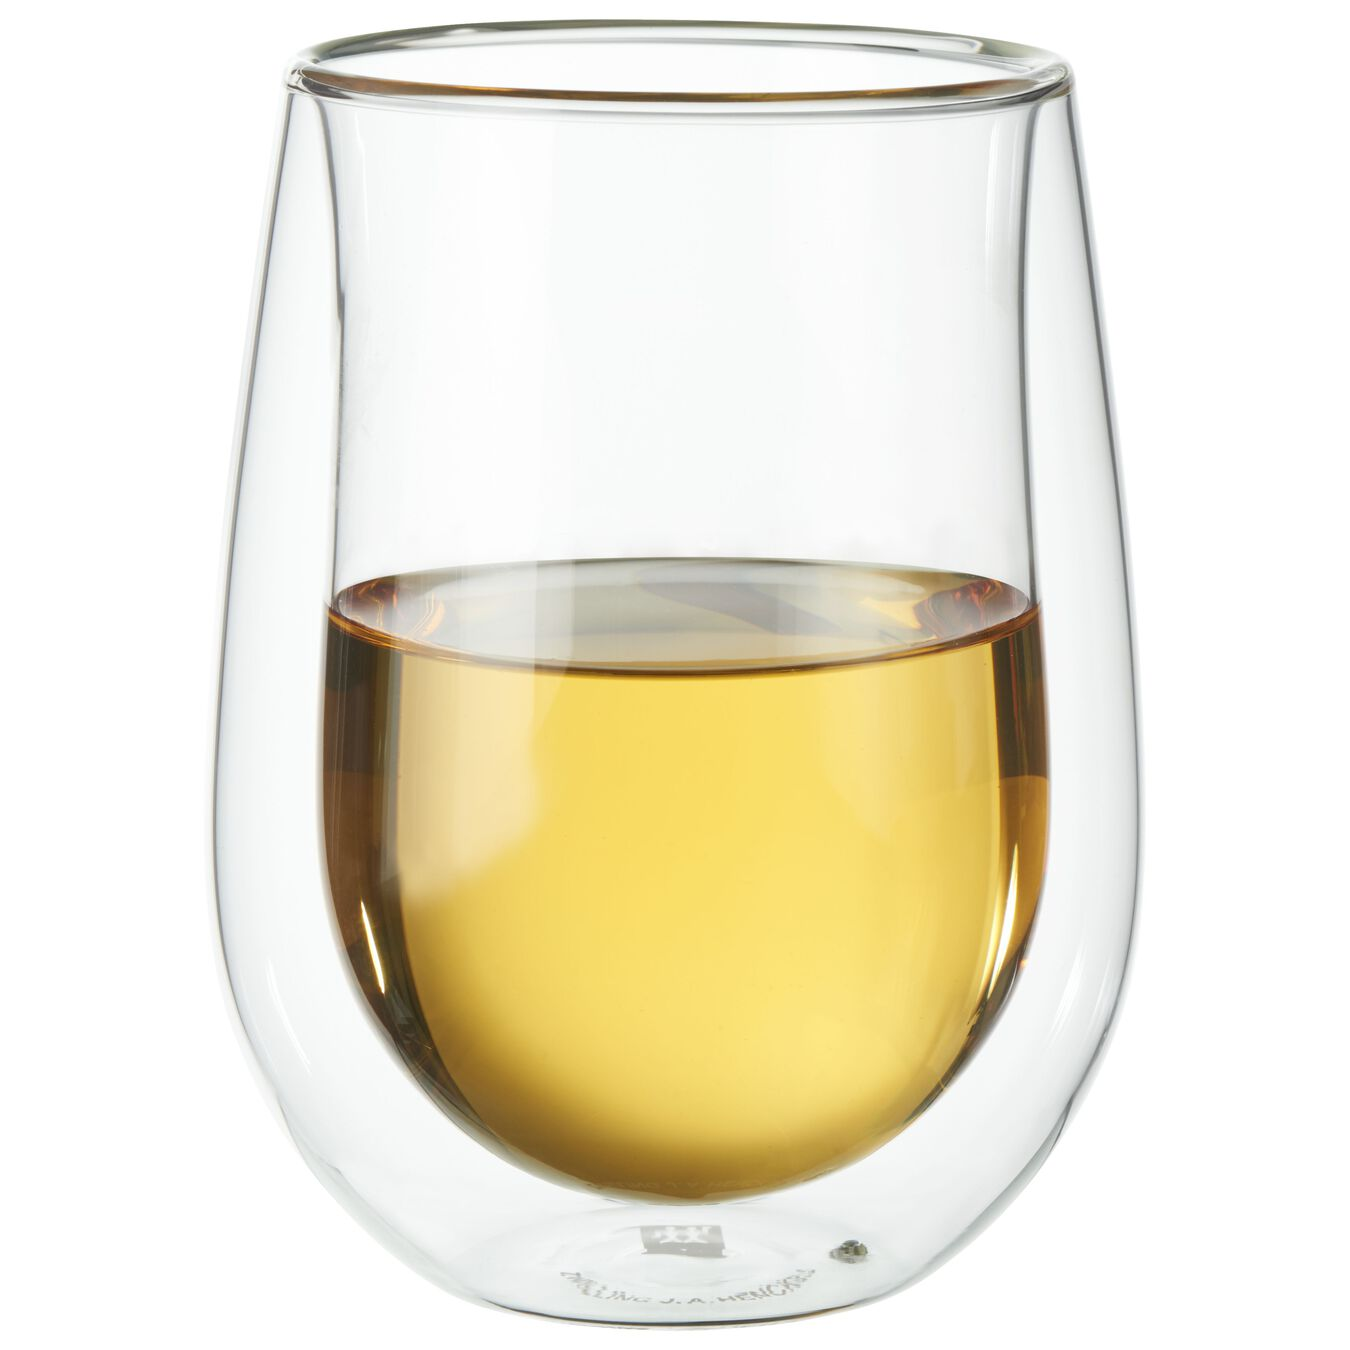 94807 / 1, Double wall glas Sommelier set,,large 1